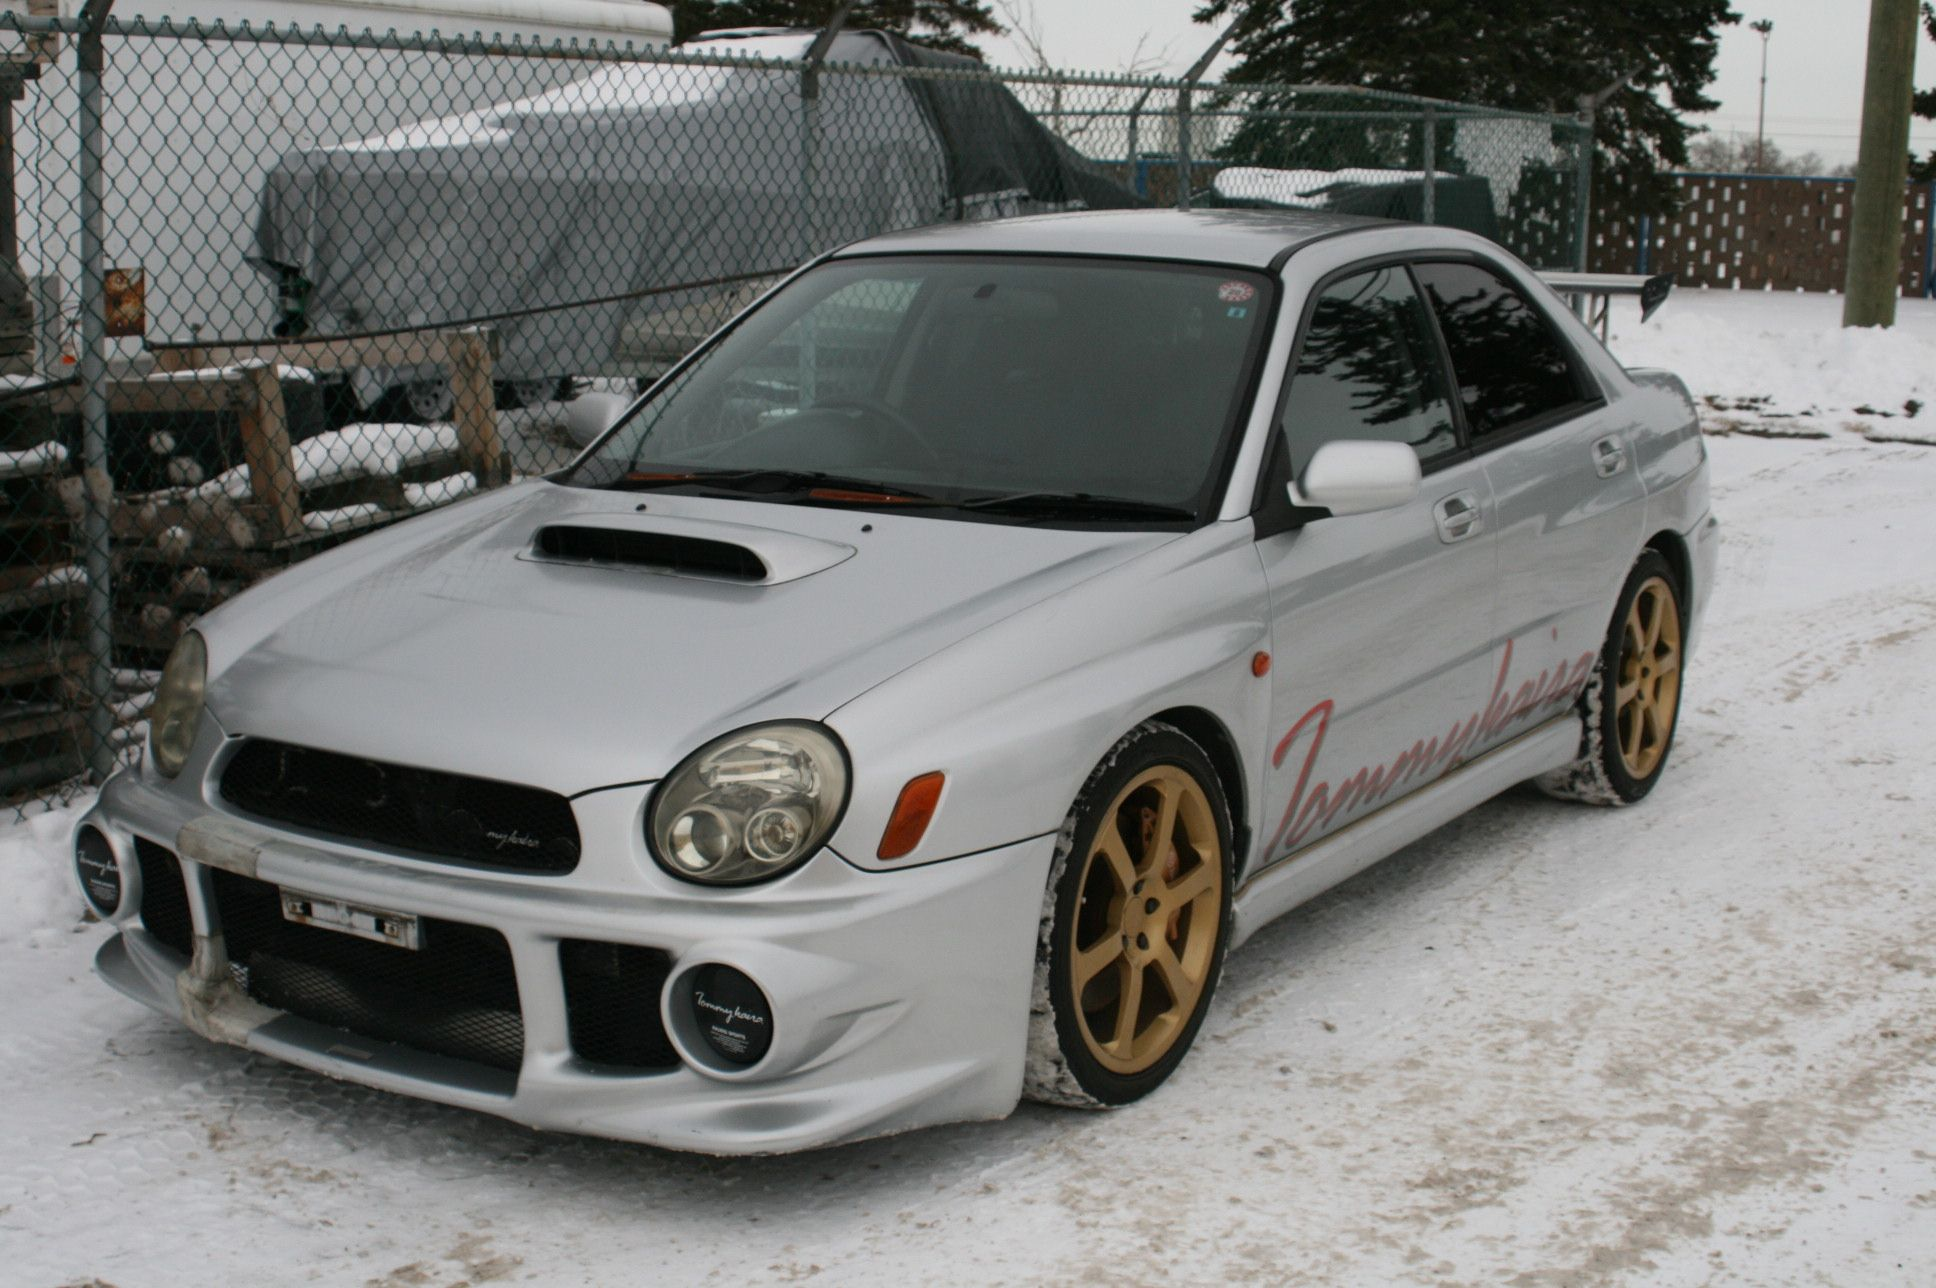 07cb1dcdea79894ae7cc0031d0b9041e Take A Look About 2002 Subaru Impreza Wrx Specs